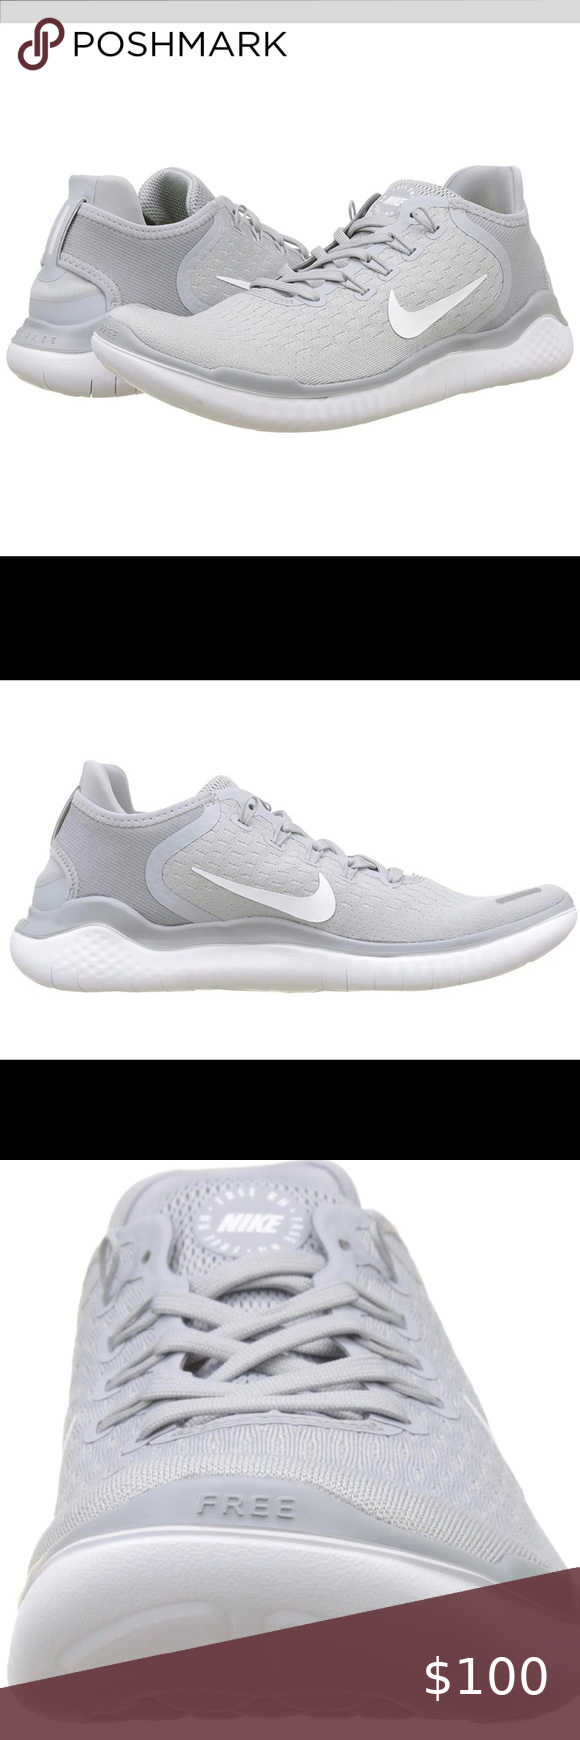 14 Nike Shoes Athletic Shoes